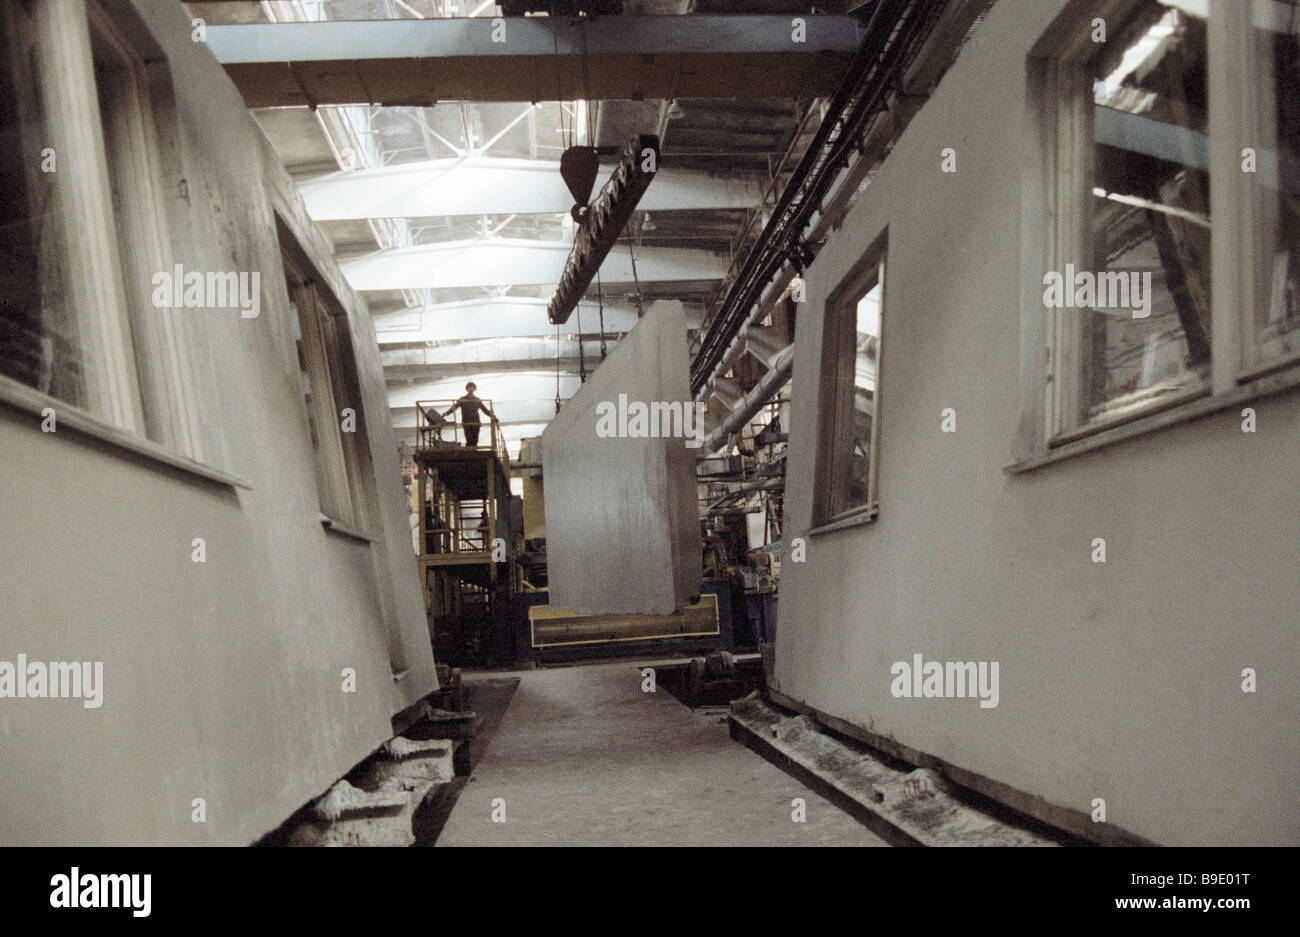 Panels used for the assembly of building carcasses - Stock Image